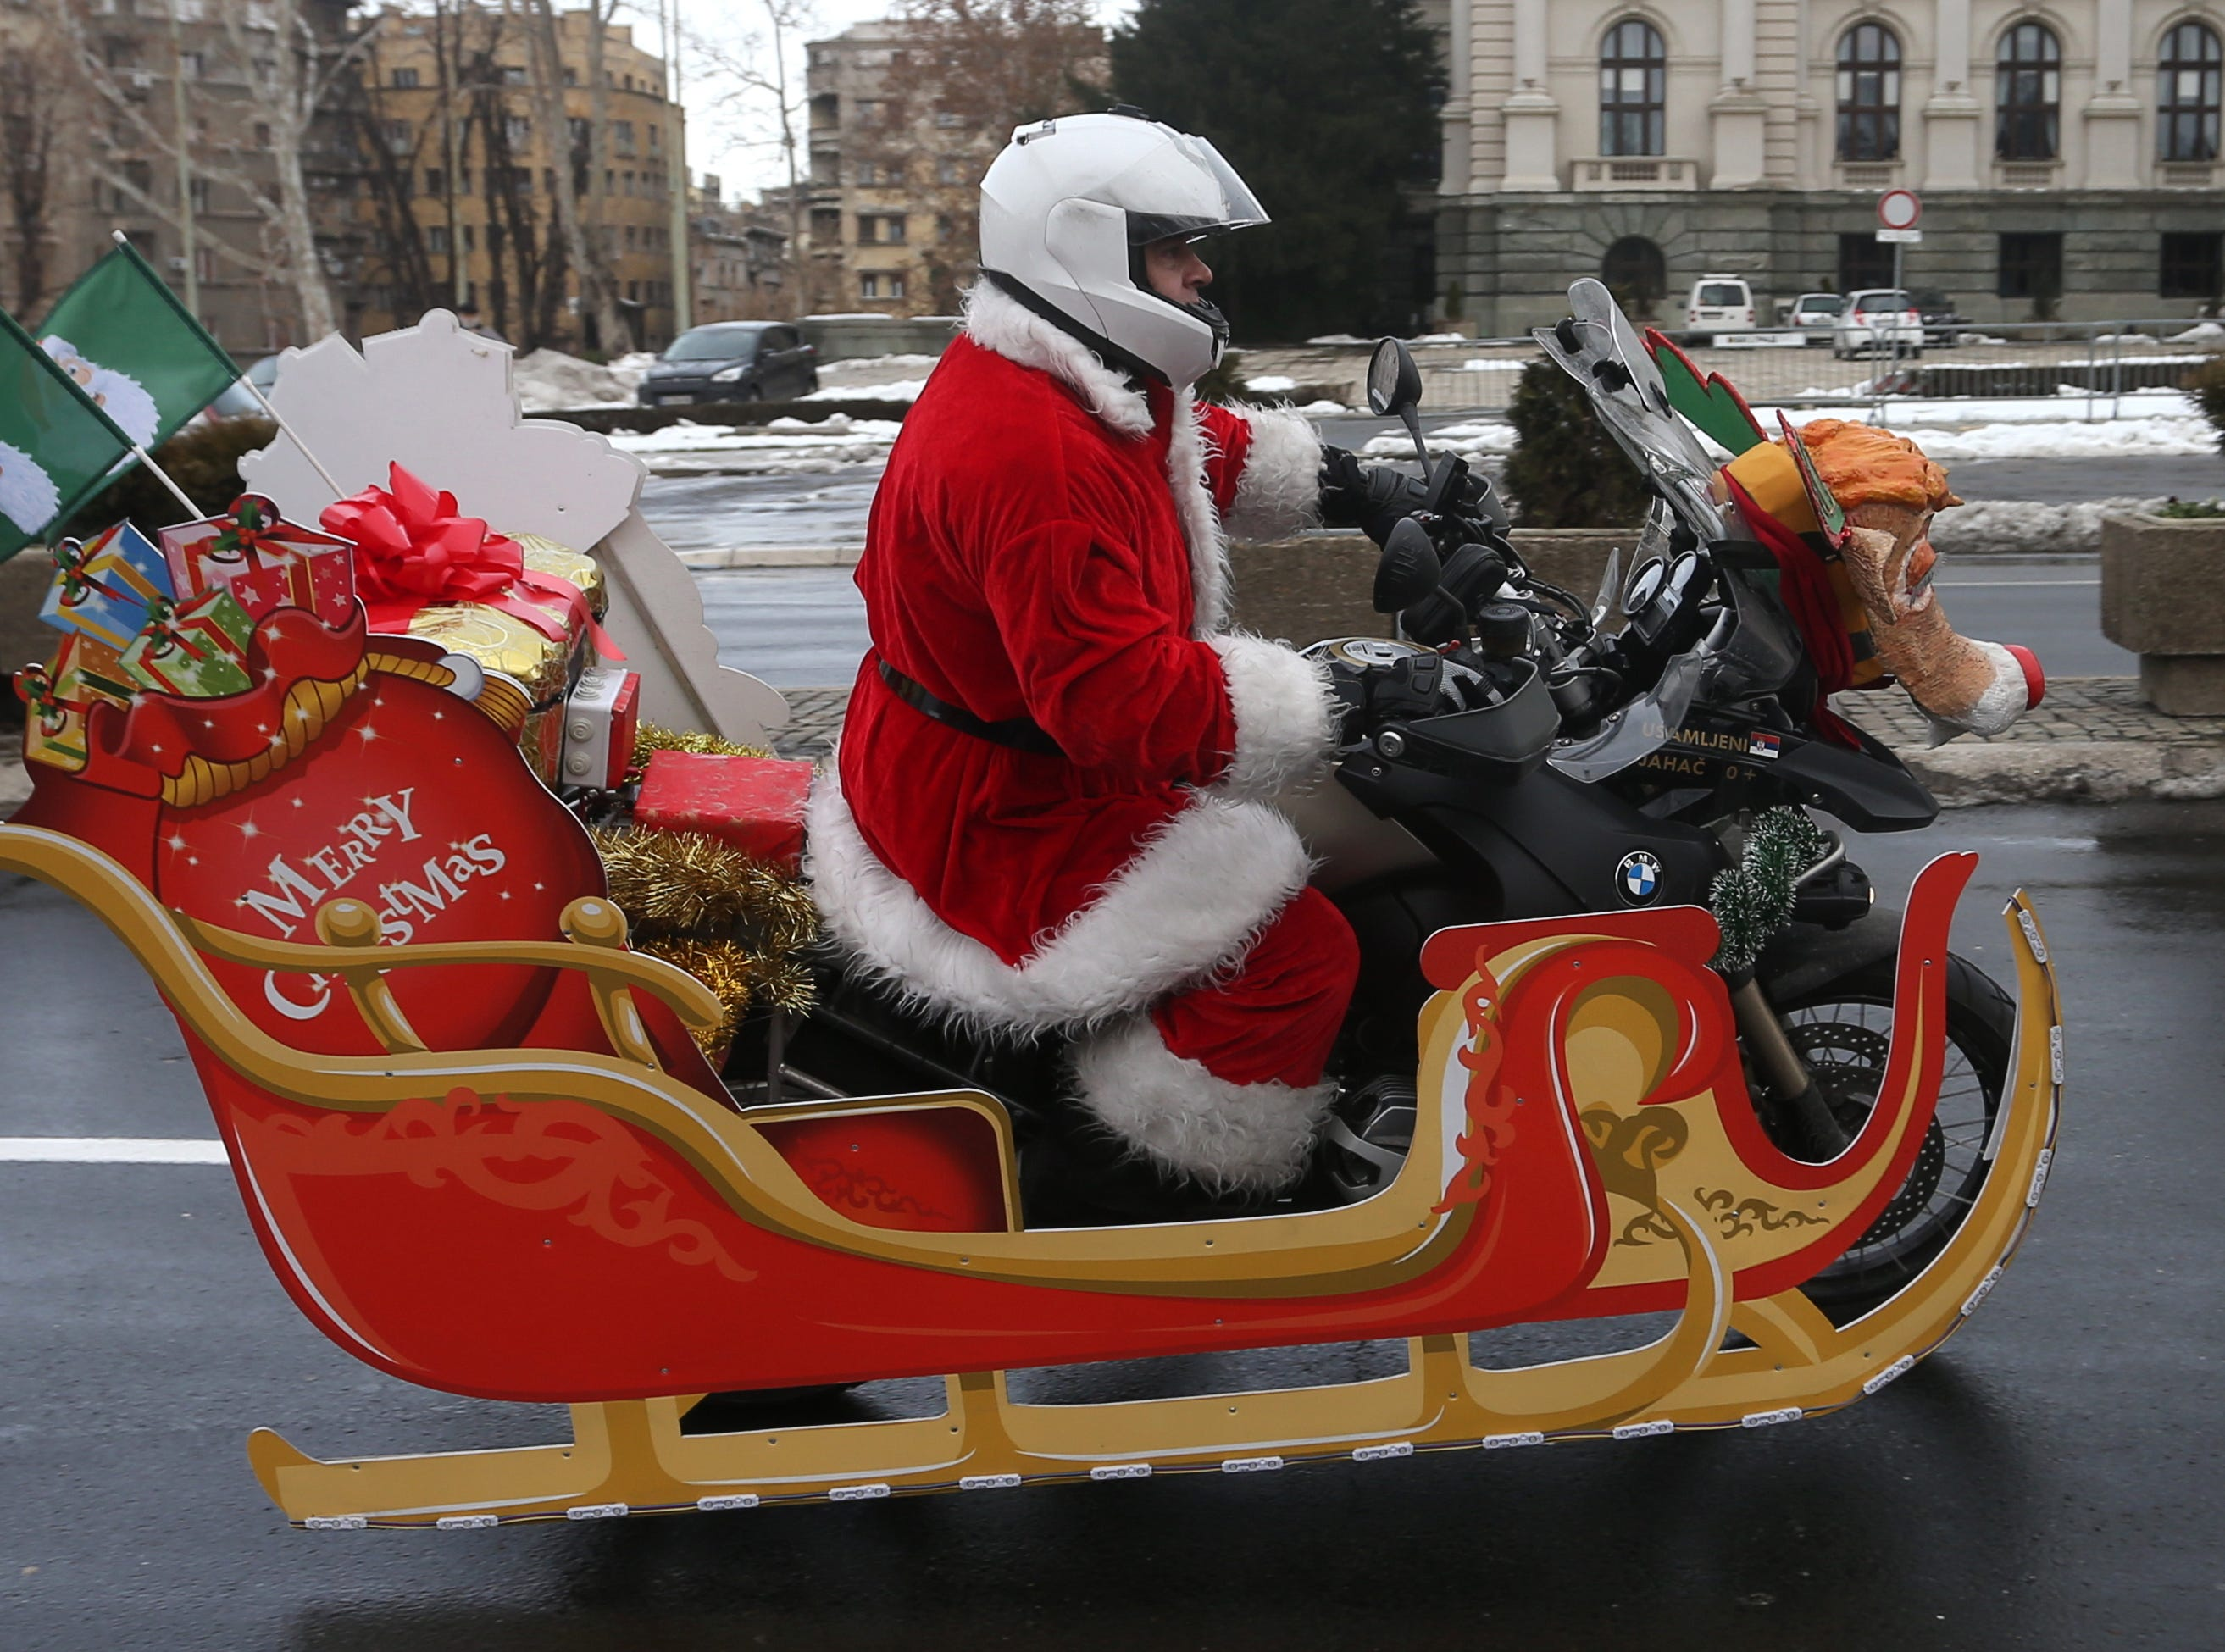 Serbian motorcyclists dressed in Santa costume drives through the streets of Belgrade, Serbia on Dec. 22, 2018. A group of Serbian motorcycle enthusiasts gathered in the Serbian capital for a joint ride to the bring Christmas gifts for underprivileged children.